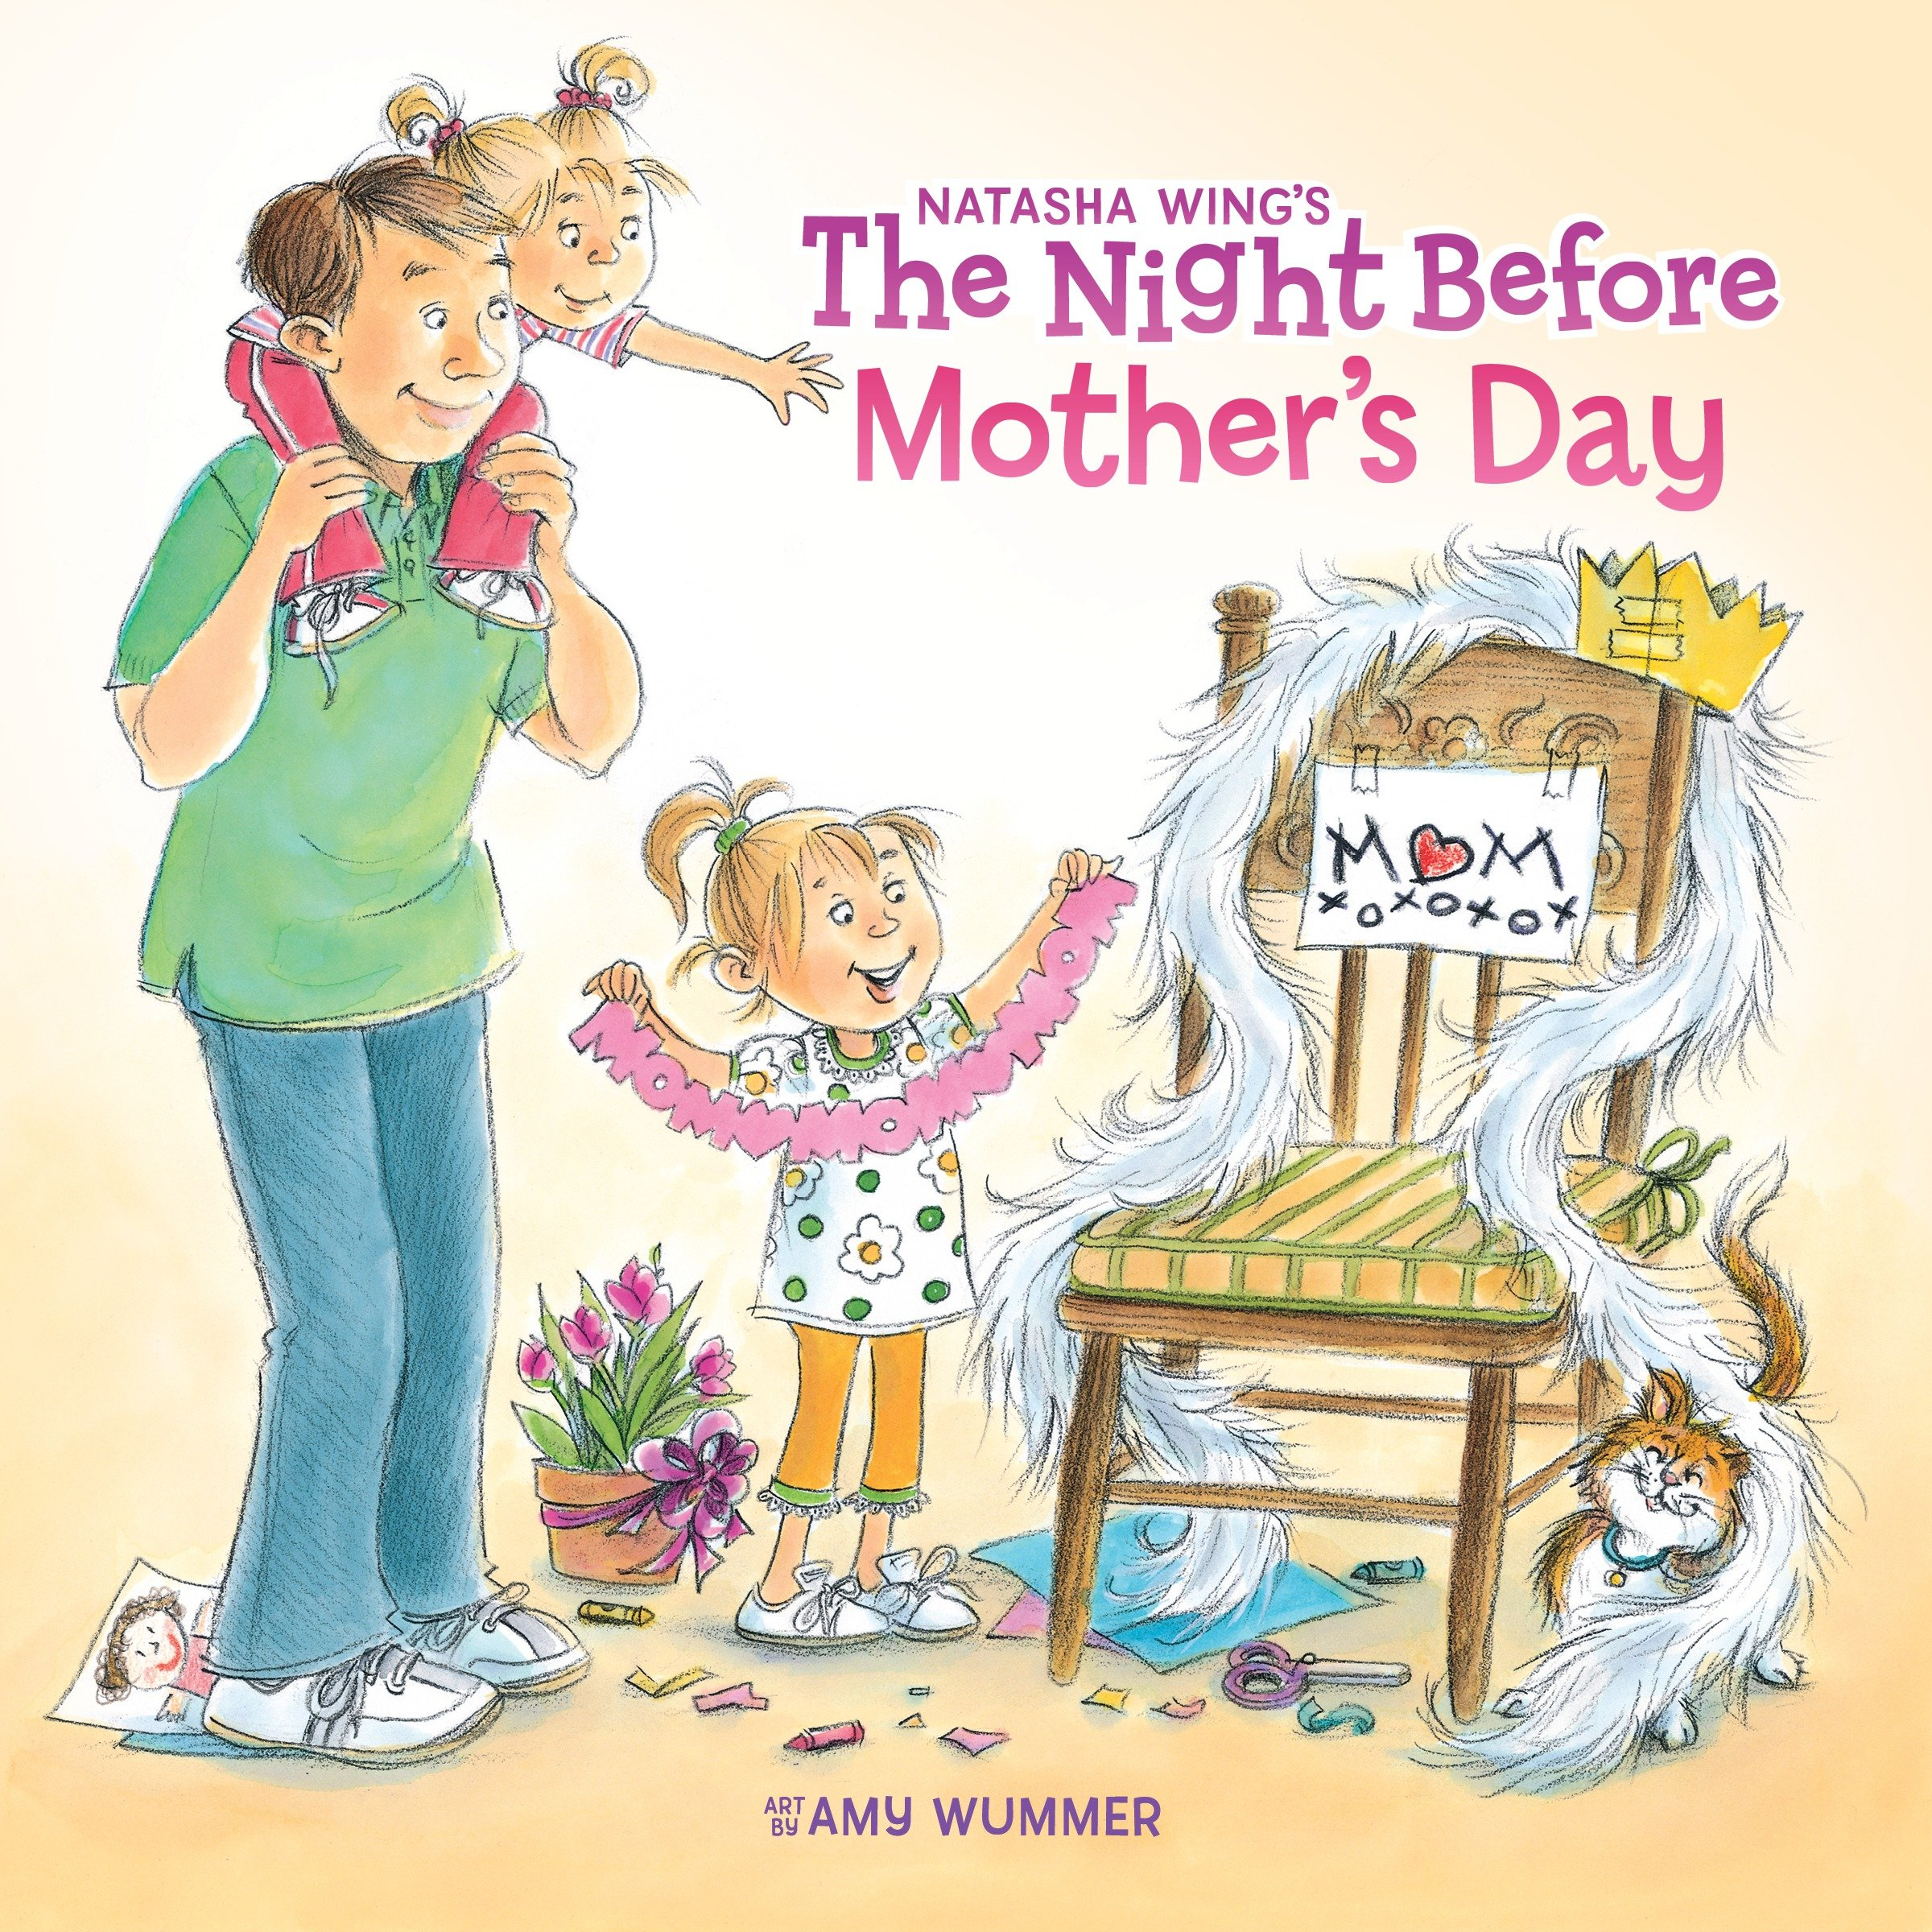 NIGHT BEFORE MOTHER'S DAY